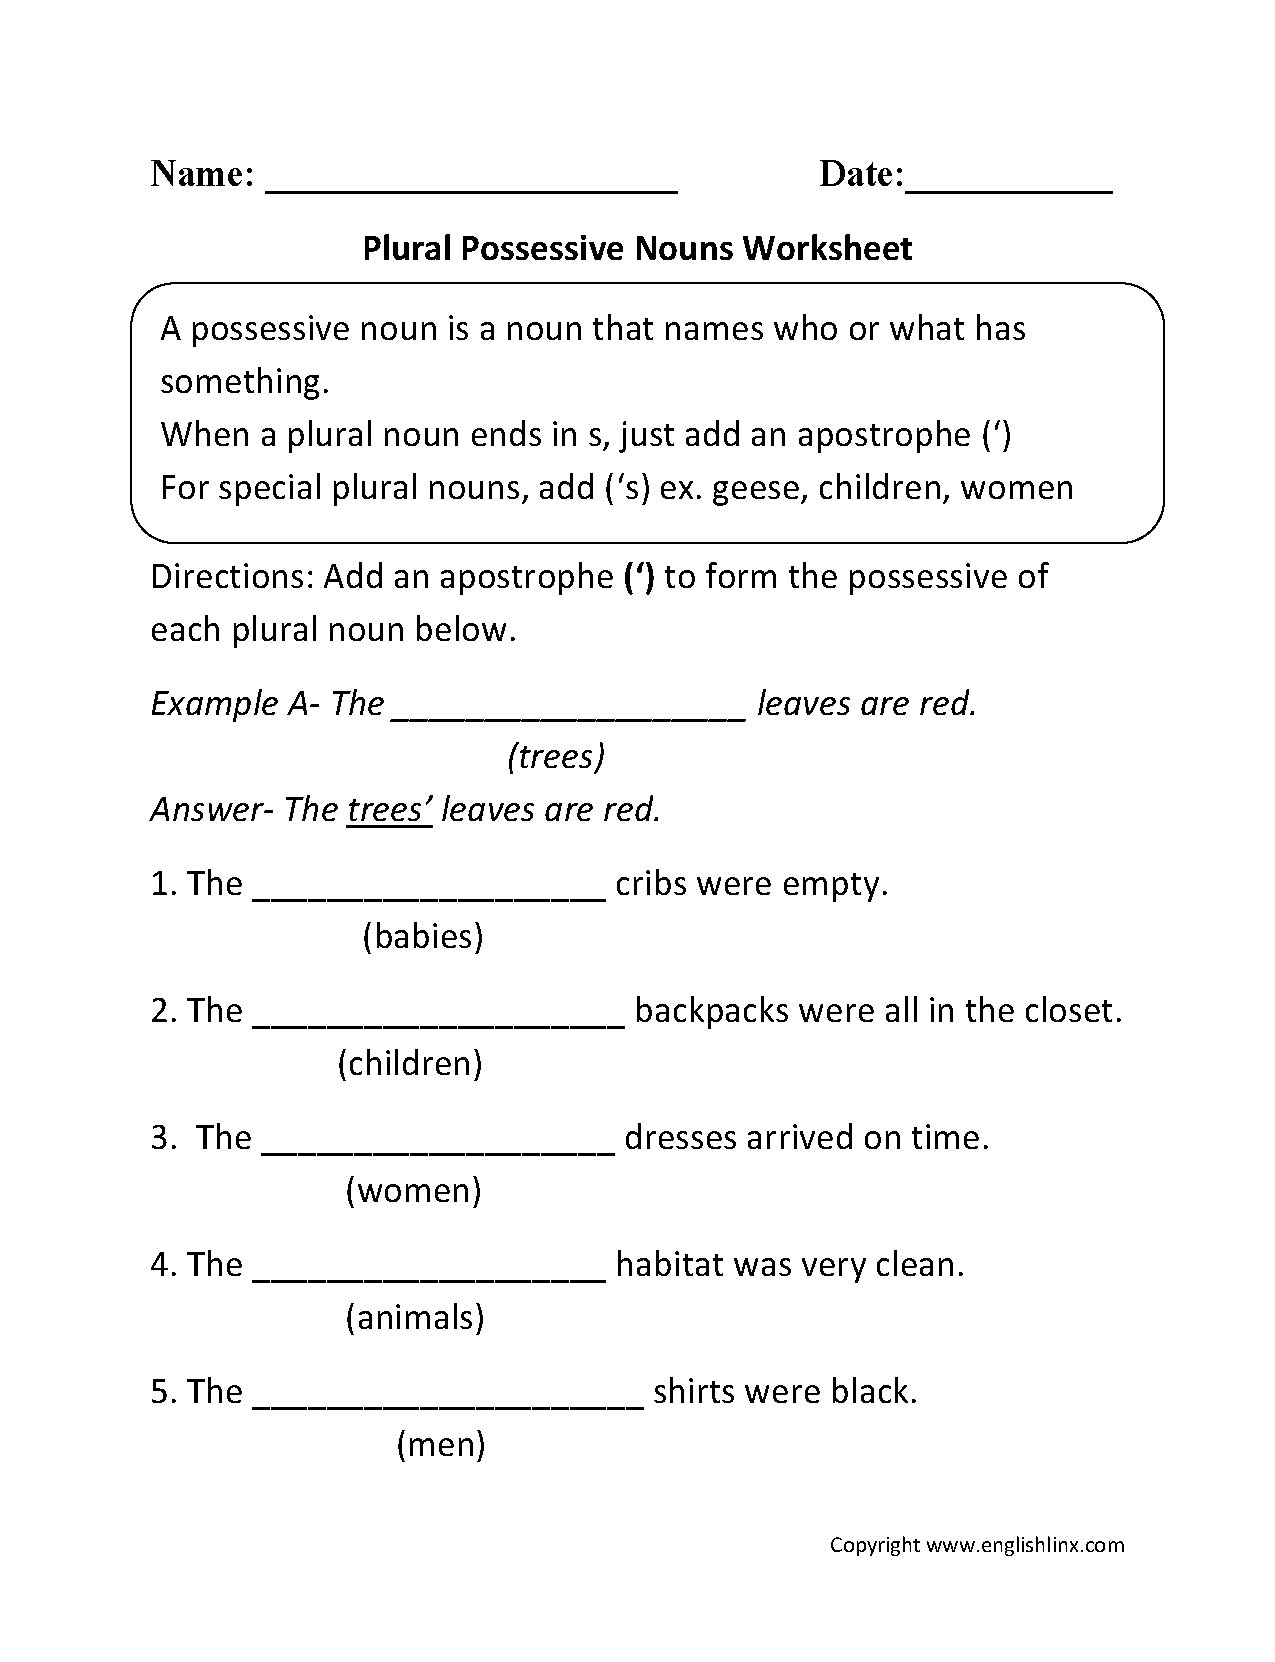 Aldiablosus  Pretty Nouns Worksheets  Possessive Nouns Worksheets With Gorgeous Possessive Nouns Worksheets With Agreeable Writing Hypothesis Worksheet Also Customary Conversions Worksheet In Addition C Worksheets And Mystery Picture Graph Worksheets As Well As Grouping Worksheets Additionally Step  Aa Worksheet From Englishlinxcom With Aldiablosus  Gorgeous Nouns Worksheets  Possessive Nouns Worksheets With Agreeable Possessive Nouns Worksheets And Pretty Writing Hypothesis Worksheet Also Customary Conversions Worksheet In Addition C Worksheets From Englishlinxcom